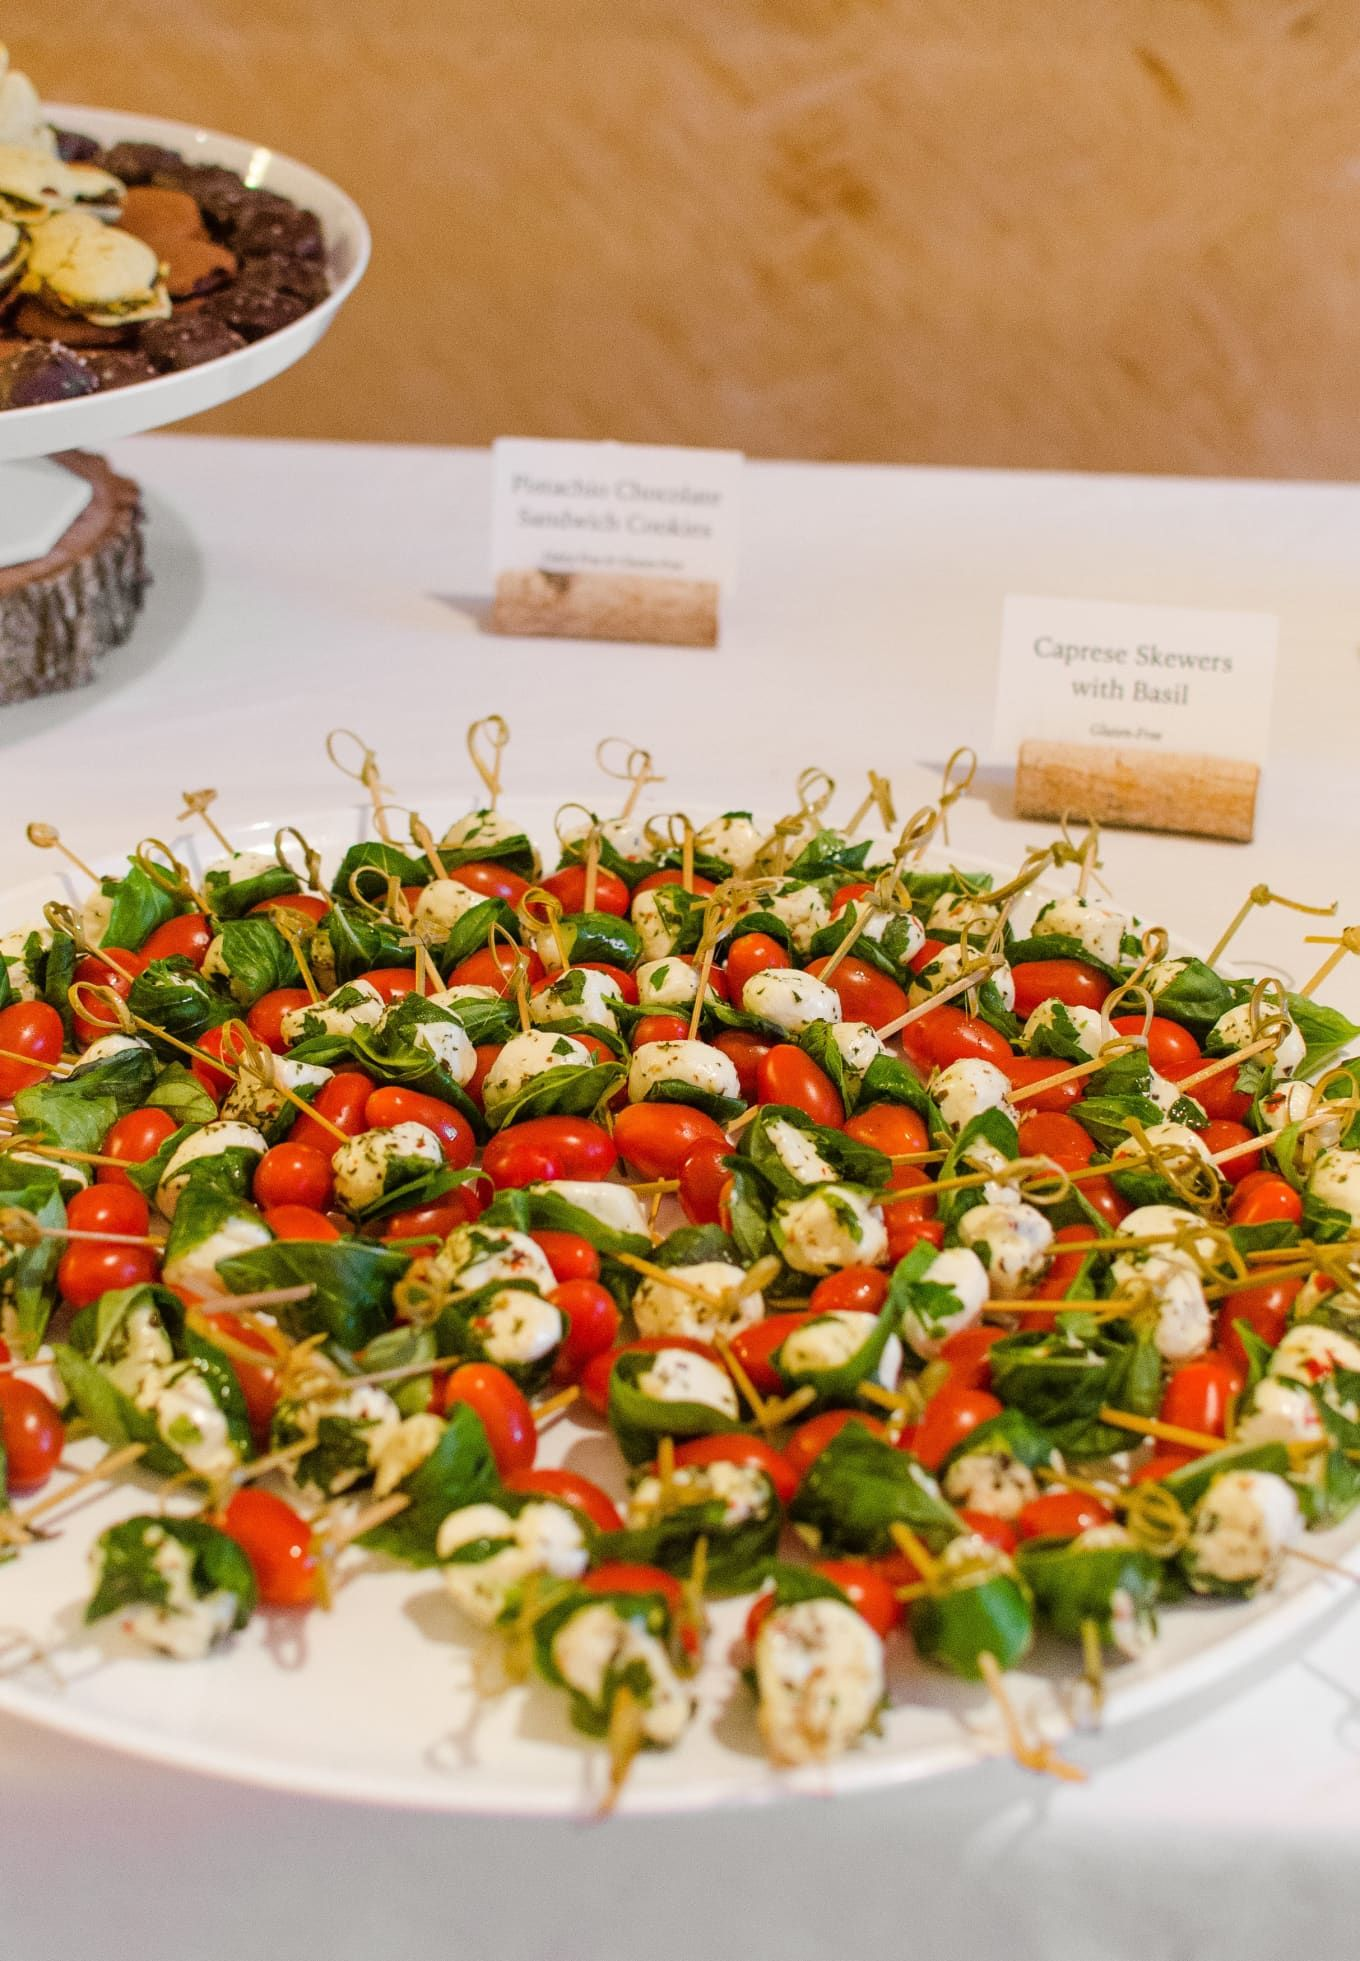 How I Calculated the Amount of Food Needed to Feed 200 People at a DIY Wedding Reception